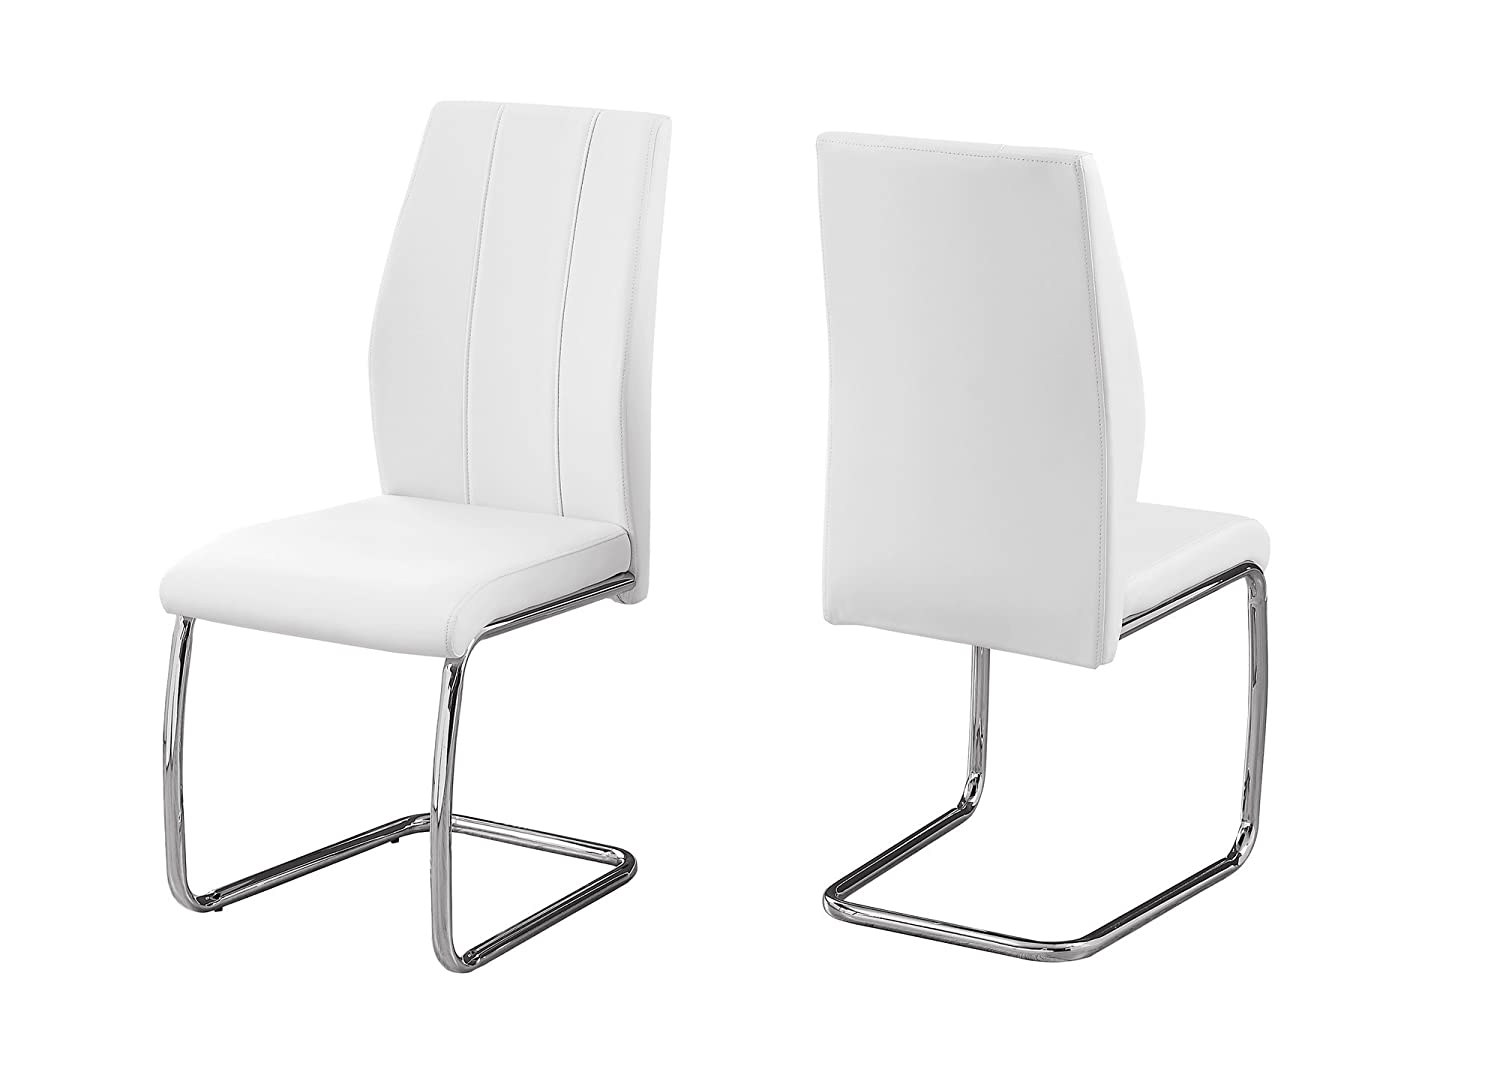 Monarch Specialties I 1075 2 Piece Dining CHAIR-2PCS 39 Leather-Look Chrome, 17.25 L x 20.25 D x 38.75 H White